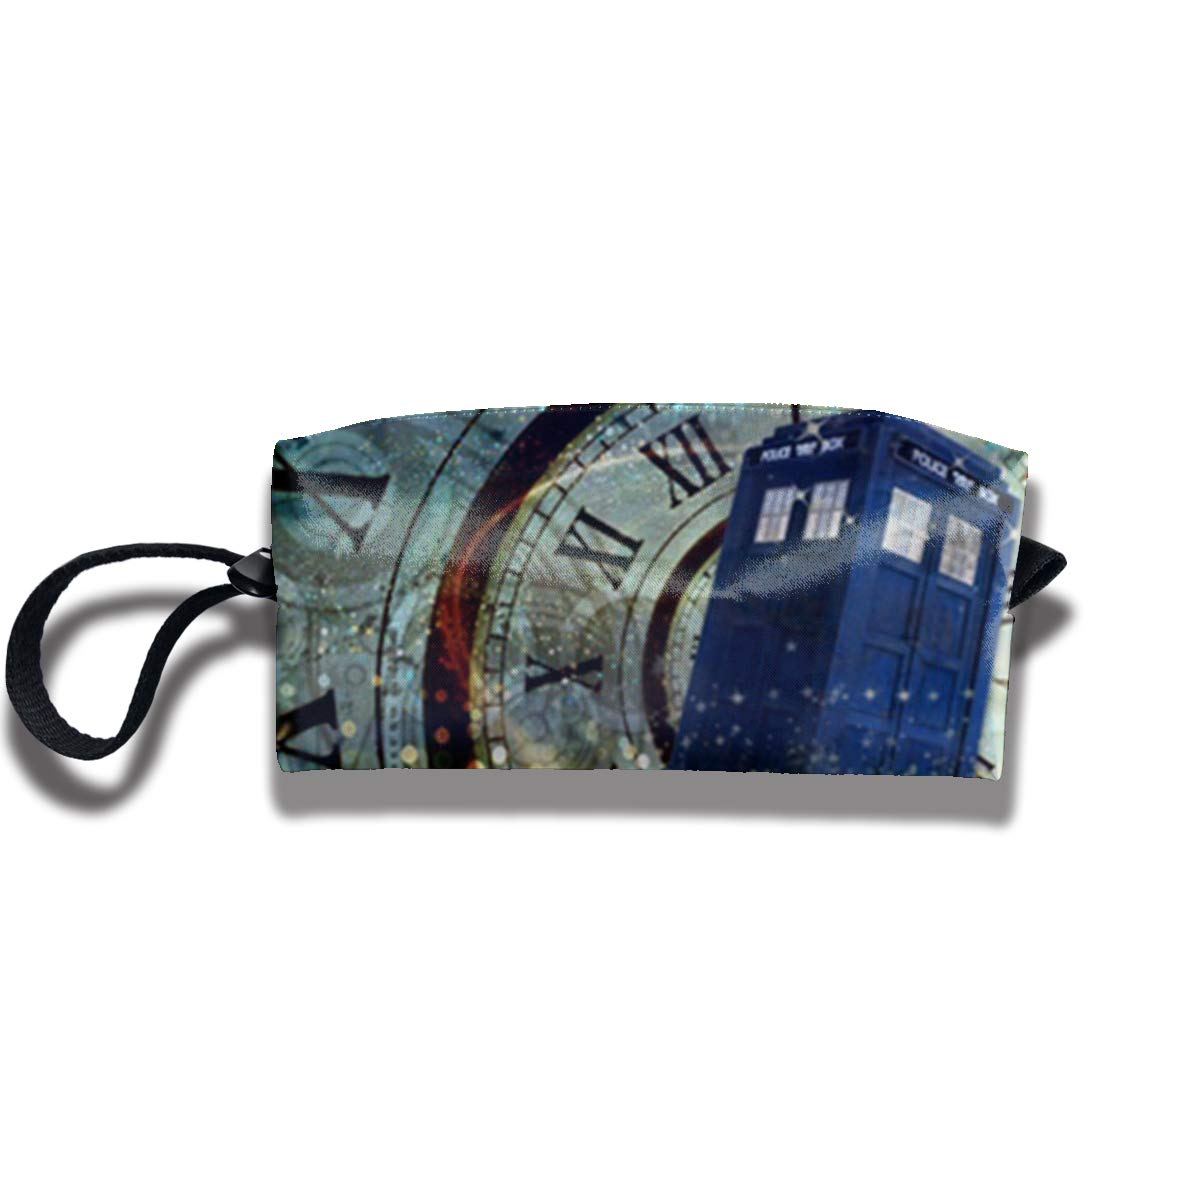 Malsjk8 Doctor Dr Women¡ ¯ s Travel Cosmetic Bags Small Makeup Clutch Pouch Cosmetic and Toiletries Organizer Bag